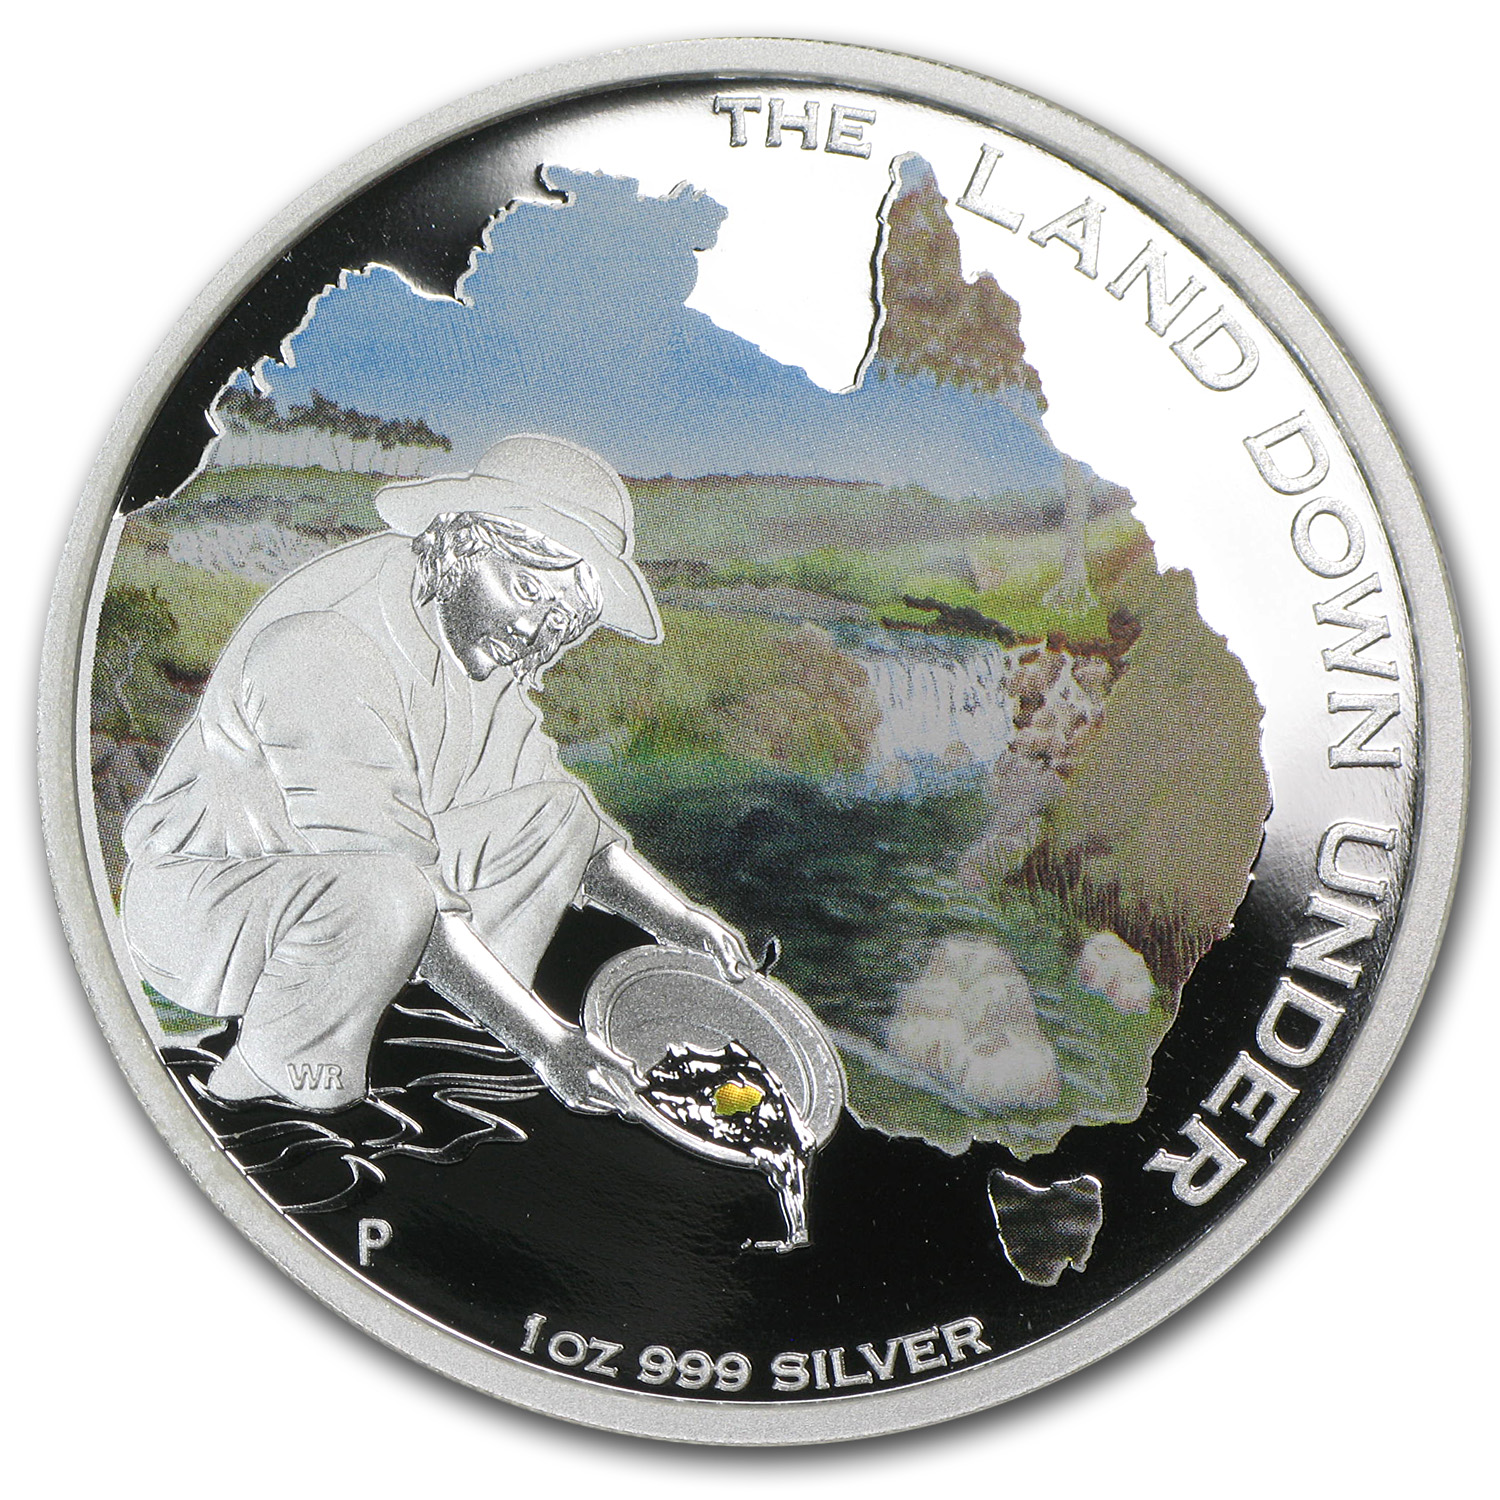 2014 1 oz Silver Australian The Land Down Under Gold Rush Prf